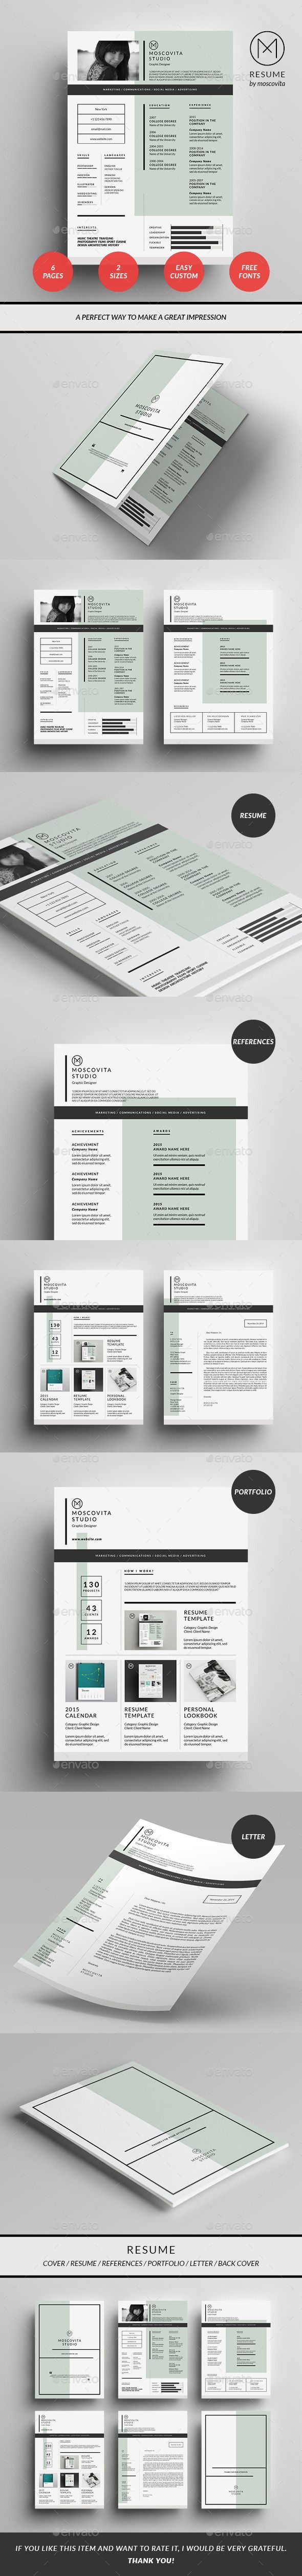 Resume by moscovita The Resume Template combines simplicity and style providing a professional finish and a great visual impact. Highlight the most am